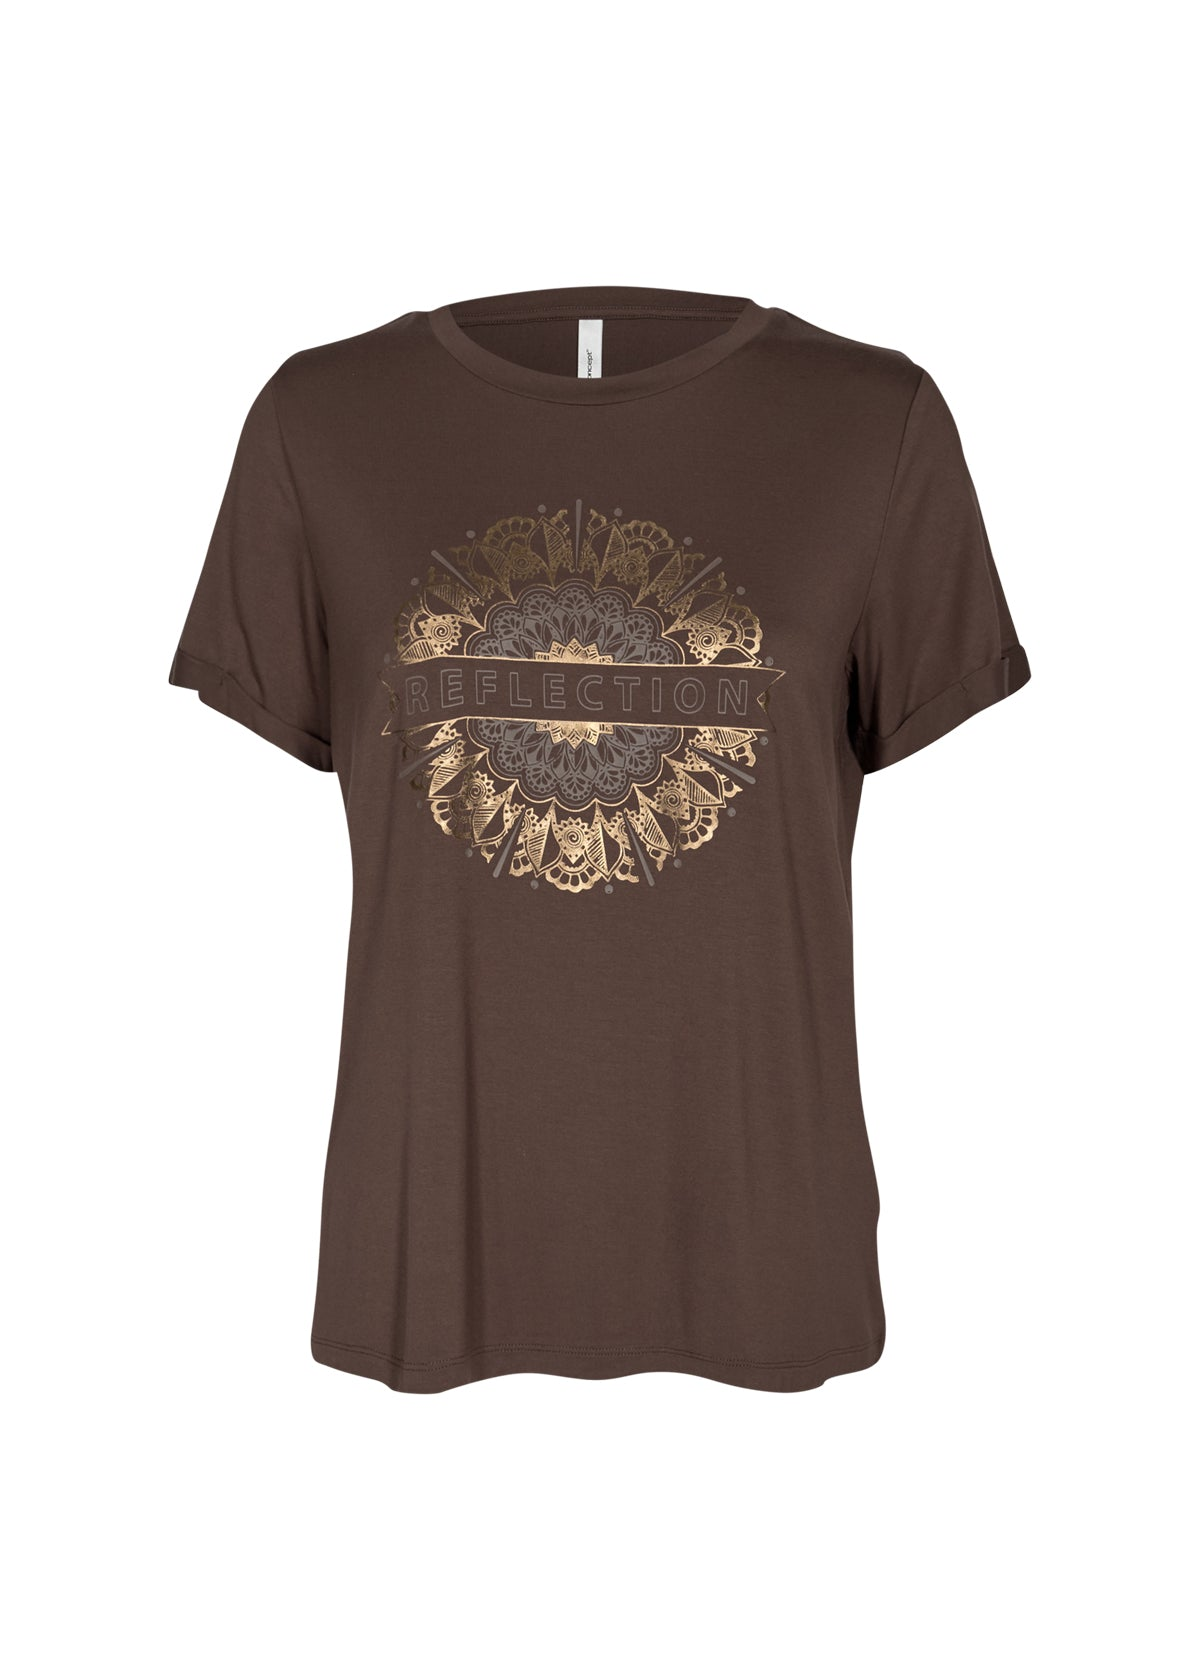 SOYA CONCEPT - T-SHIRT - 8787 BROWN